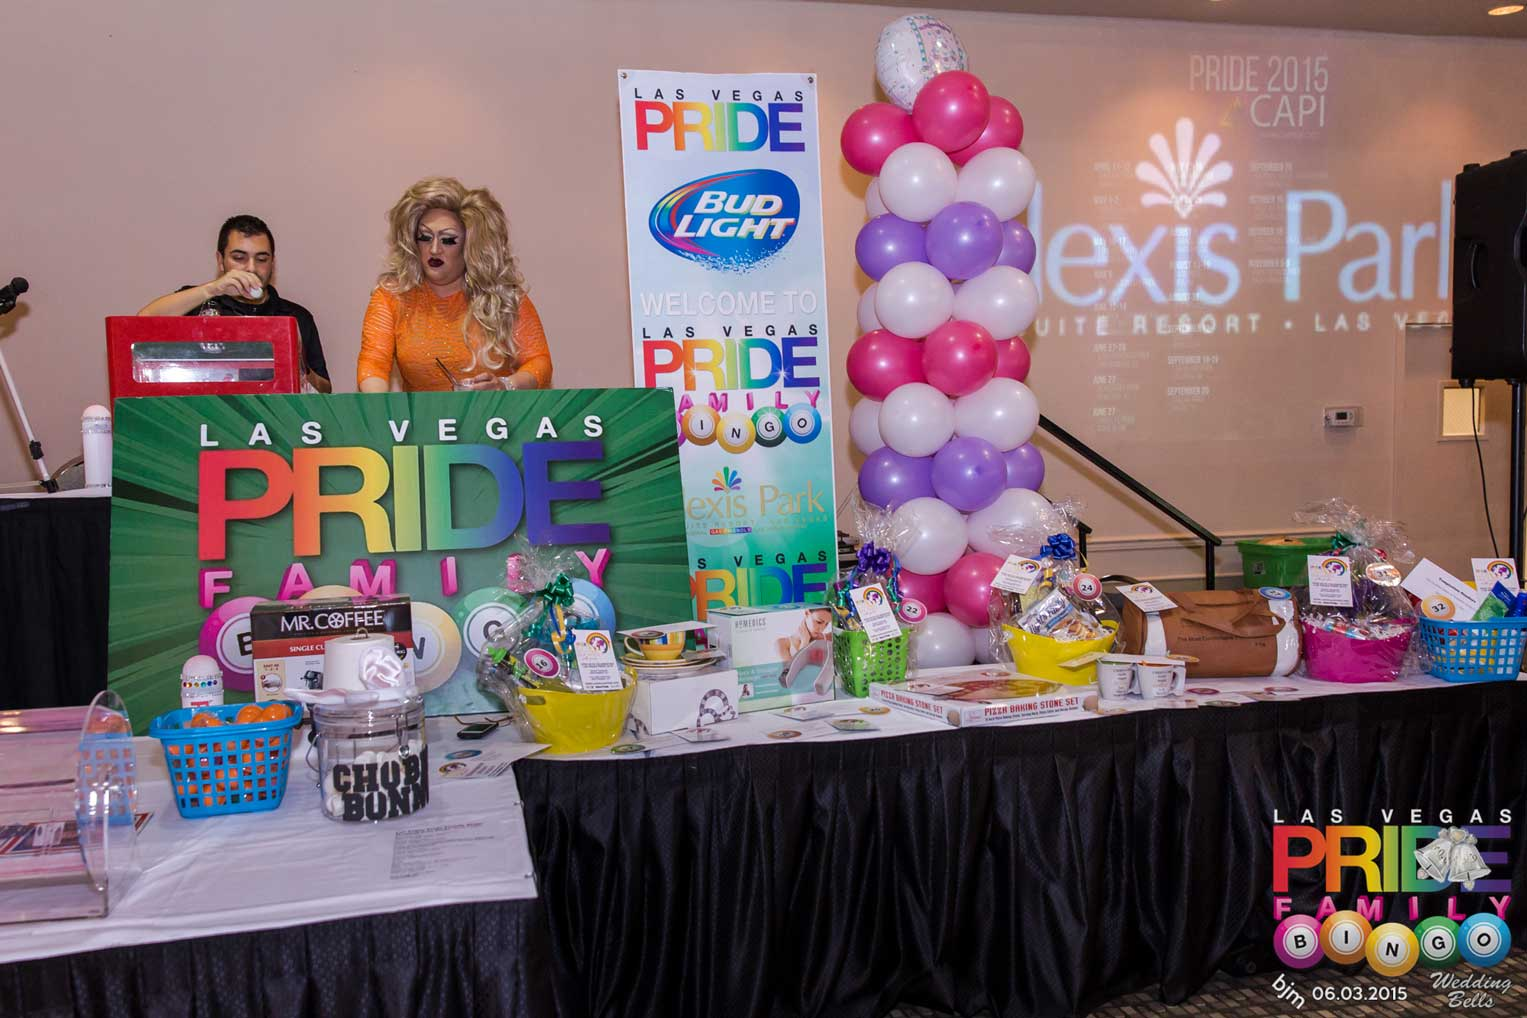 Hundreds Participated In The Monthly Themed Las Vegas PRIDE Family Bingo At Alexis Park All Suite Resort Take A Look Fun Times Had By Who